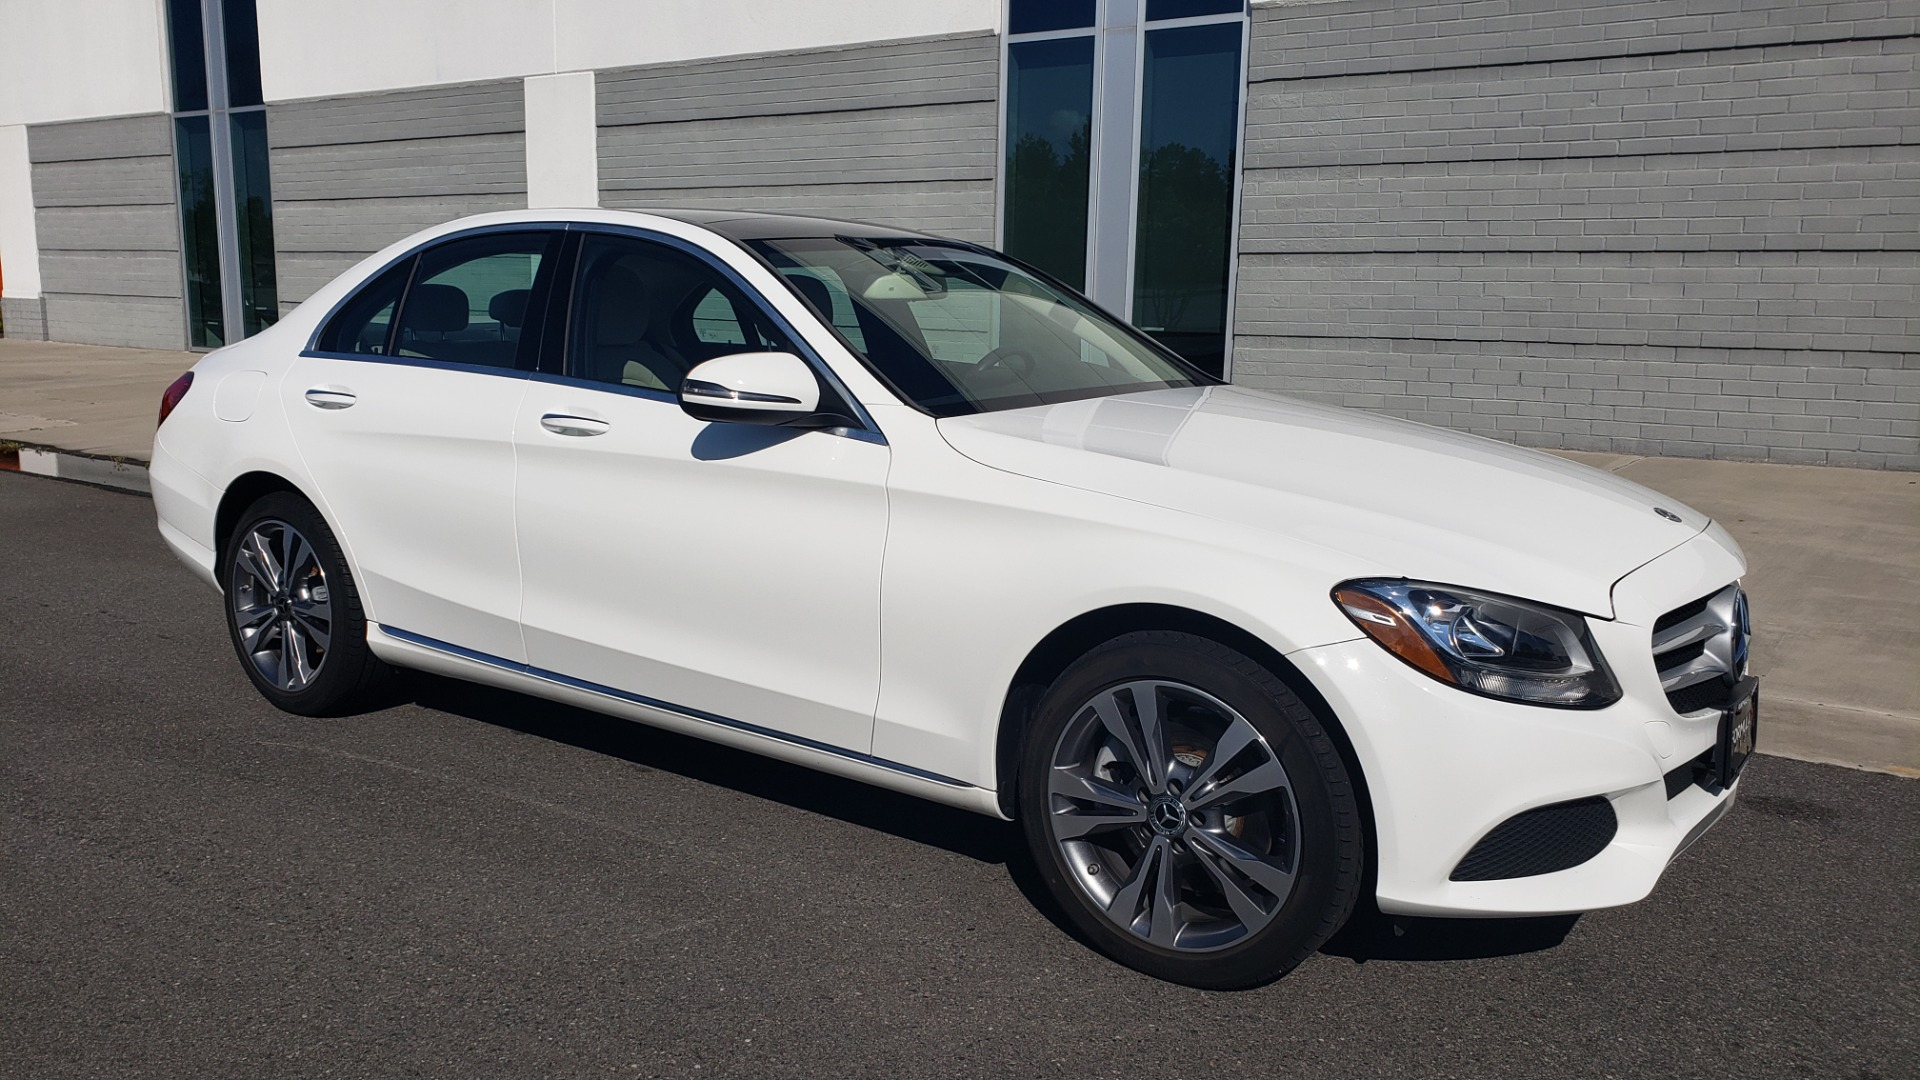 Used 2018 Mercedes-Benz C-Class C 300 4MATIC PREMIUM / APPLE CARPLAY / PANO-ROOF / REARVIEW for sale $33,795 at Formula Imports in Charlotte NC 28227 12